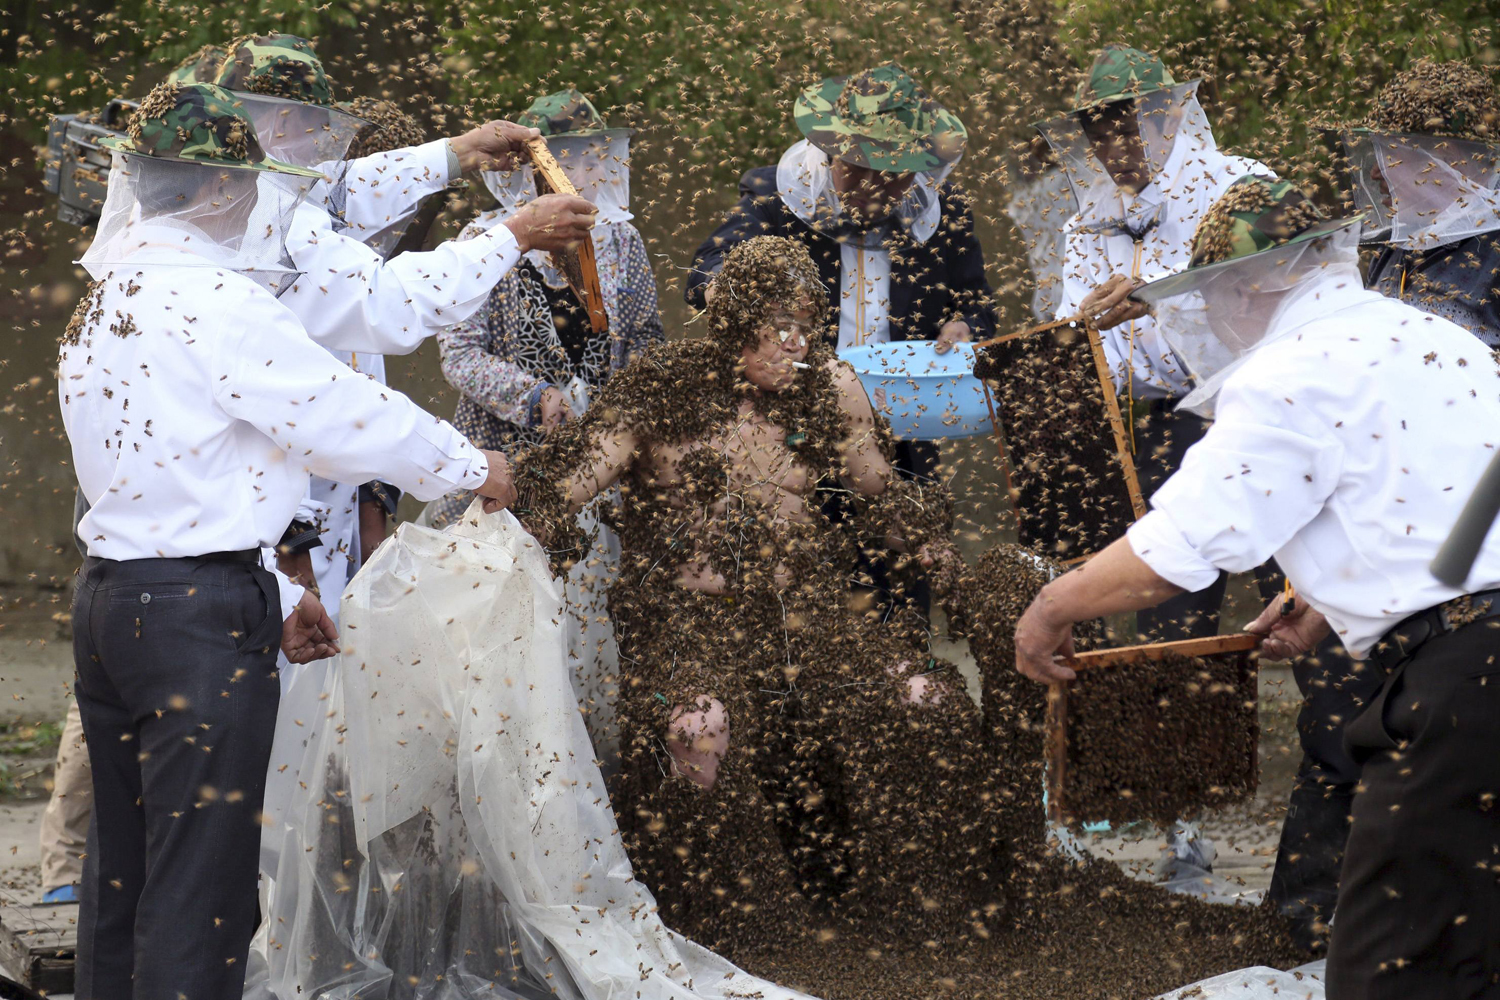 May 27, 2014. Gao Bingguo is covered with bees during an attempt to break the Guinness World Record for being covered by the largest number of bees, in Taian, Shandong province.